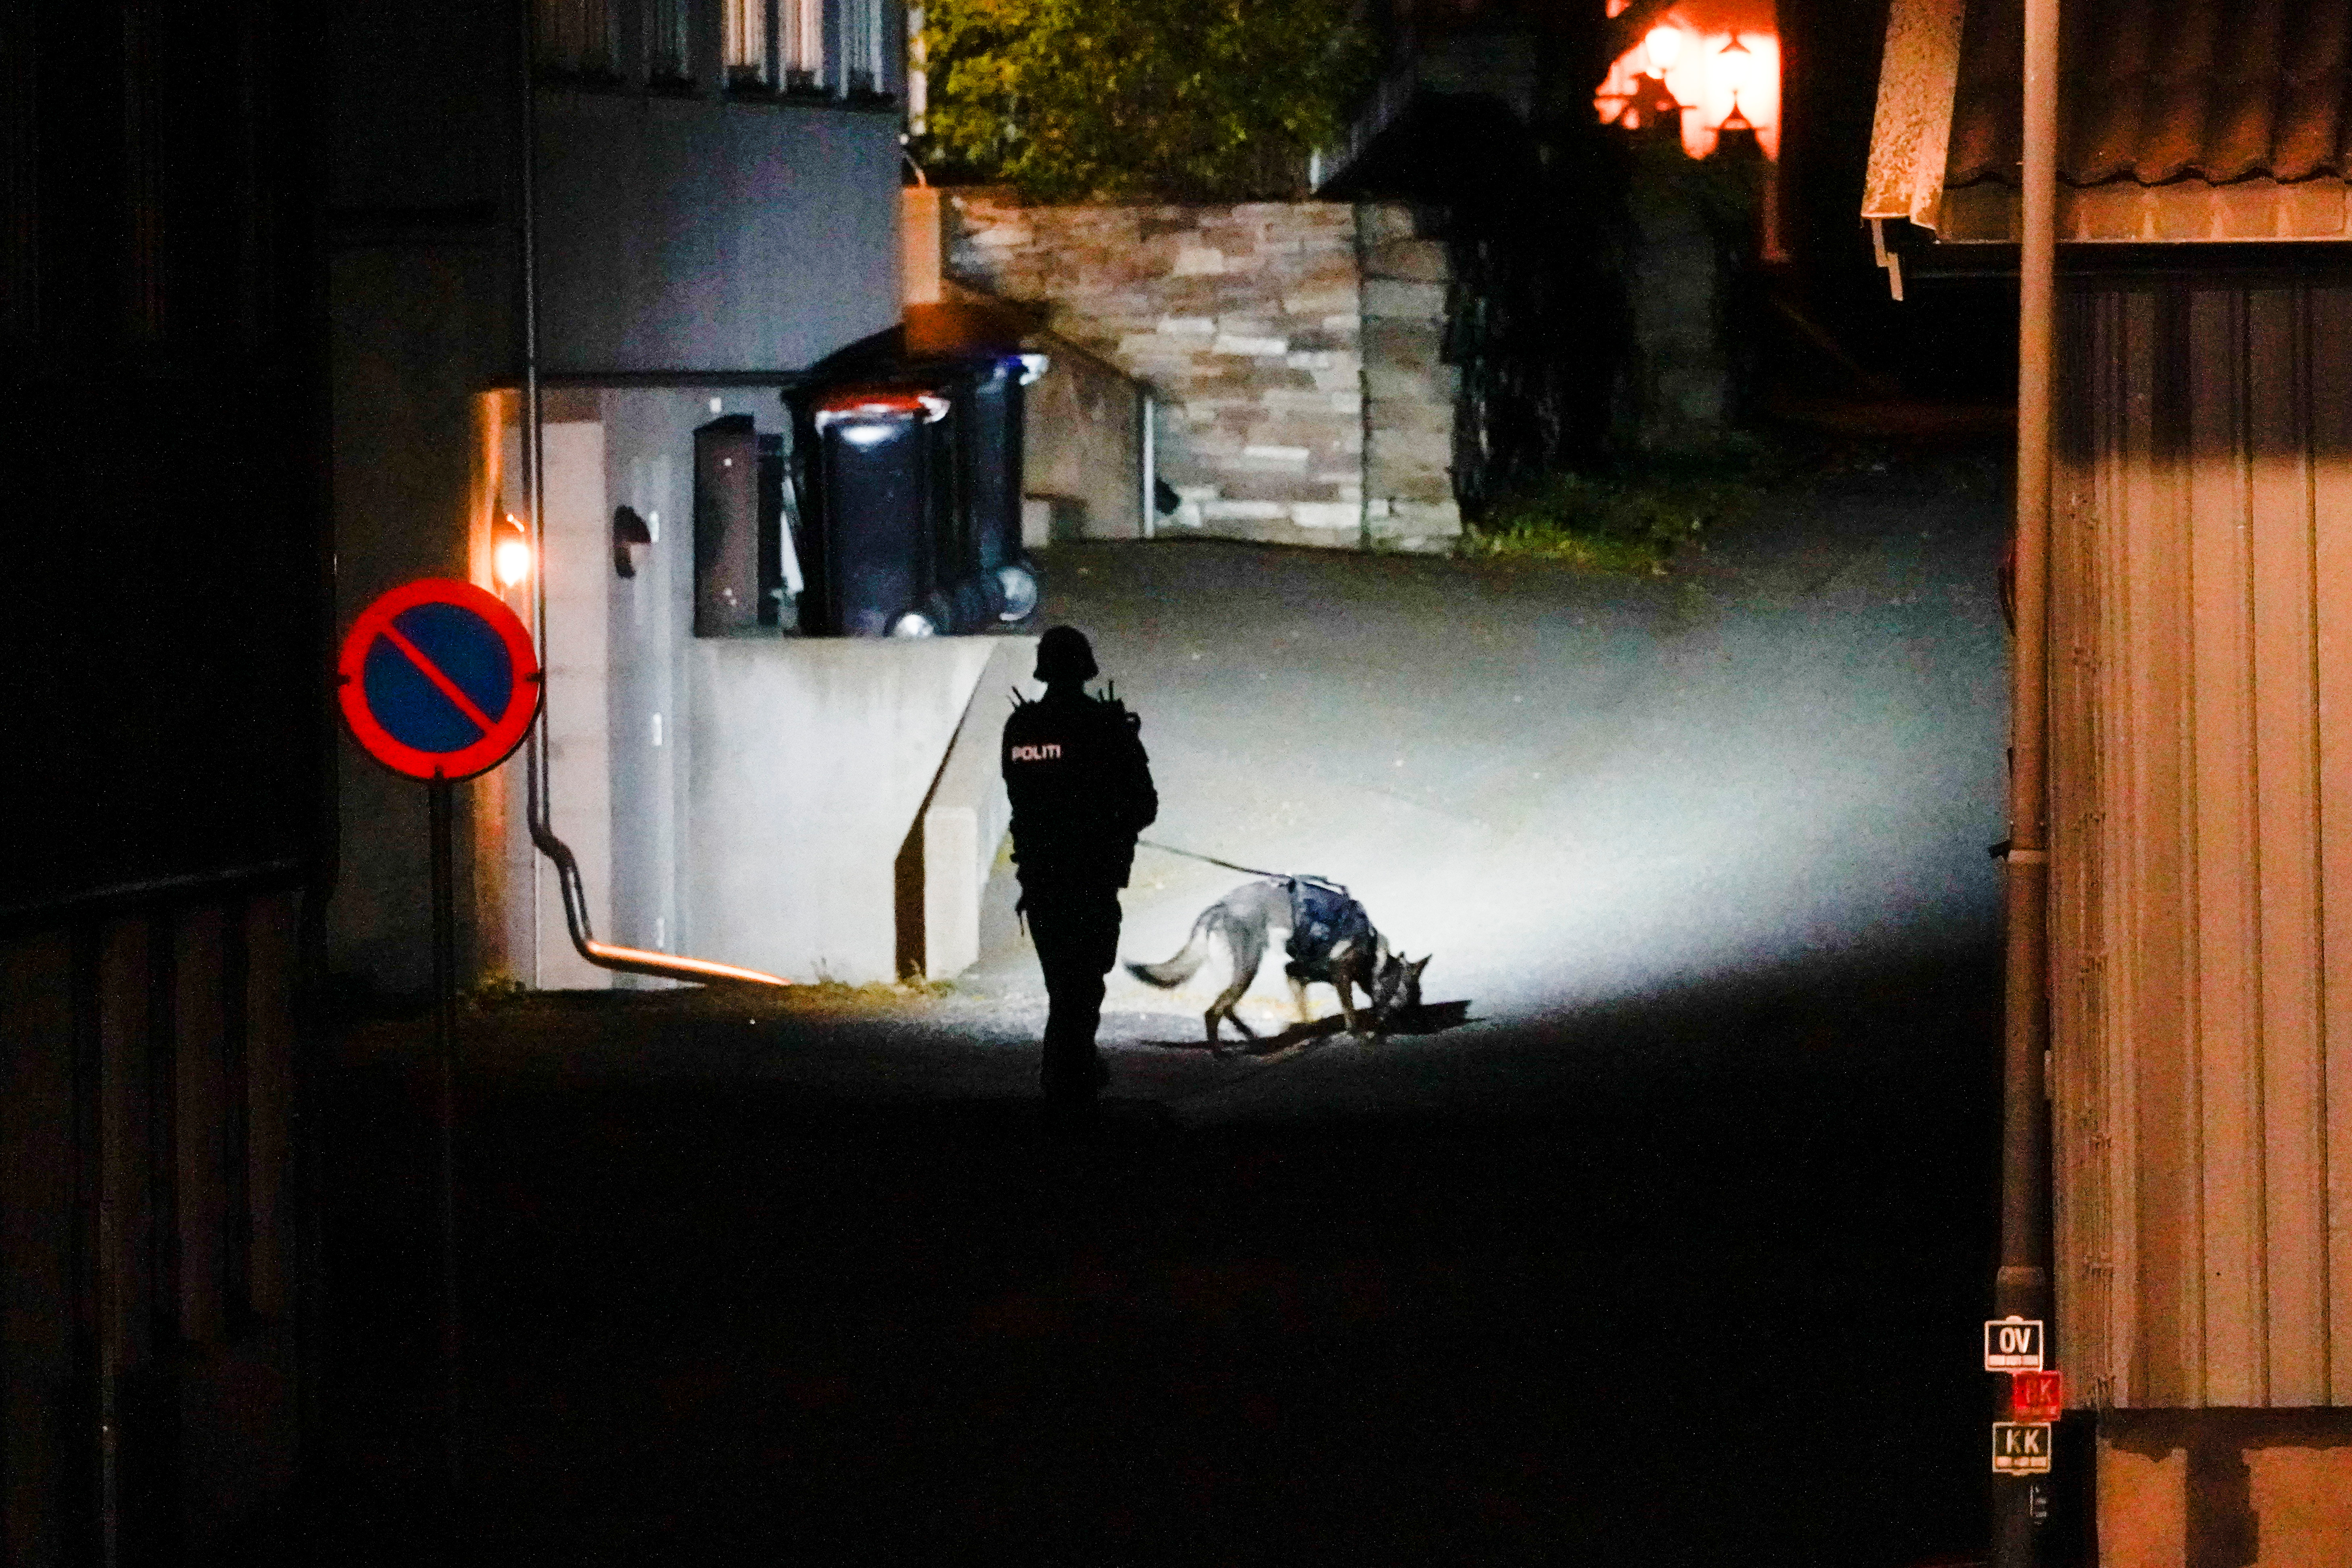 A police officer investigates after several people were killed and others were injured by a man using a bow and arrows to carry out attacks, in Kongsberg, Norway, October 13, 2021. Hakon Mosvold/NTB/via REUTERS